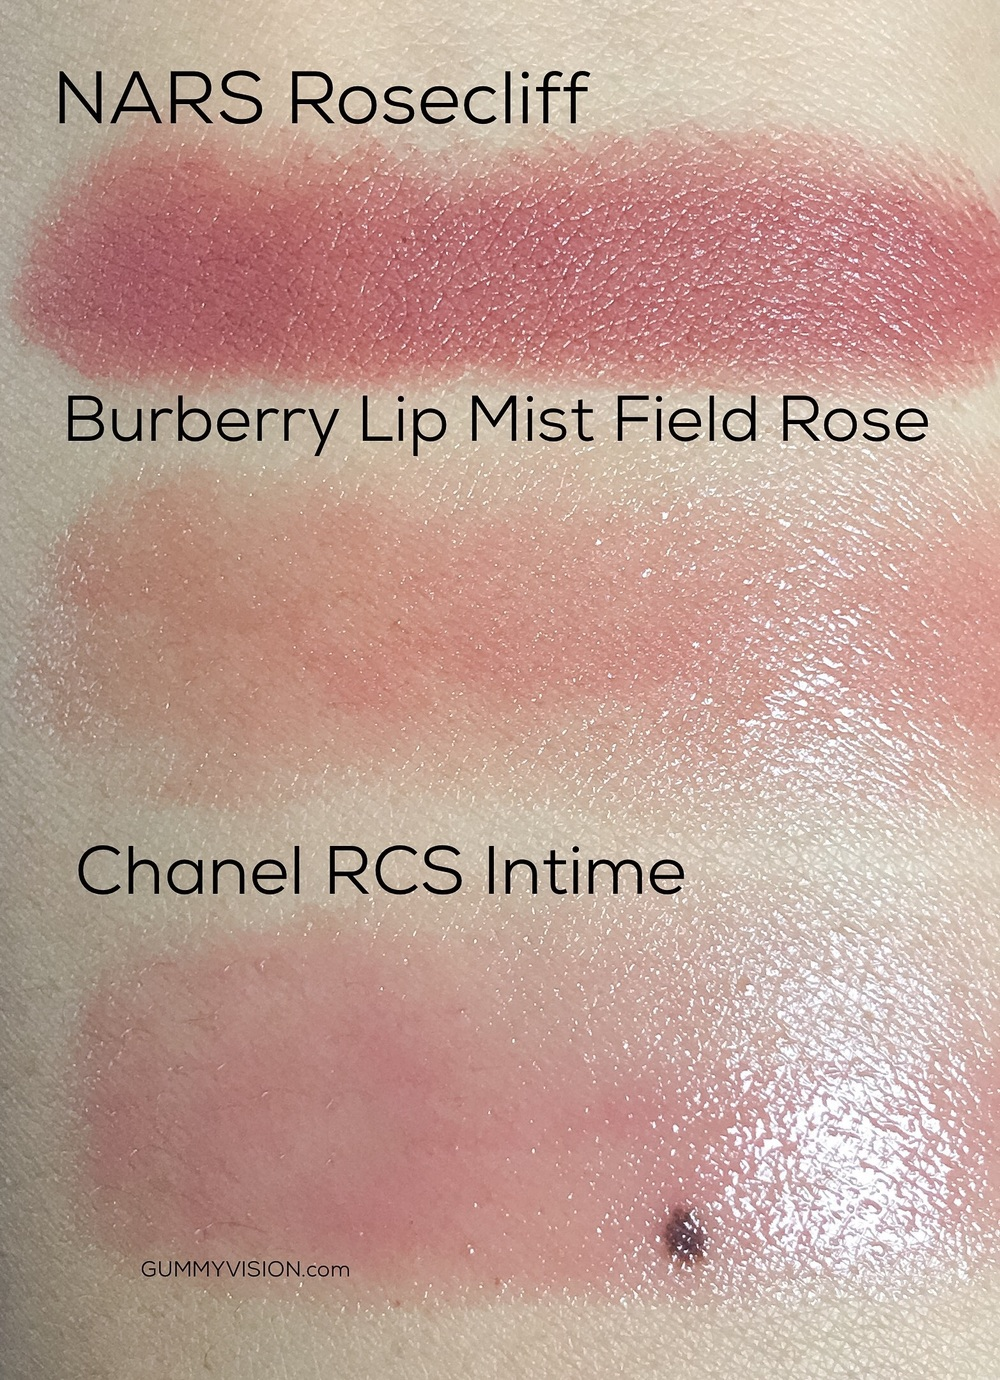 Neutral Lips - NARS Rosecliff, Burberry Lip Mist in Field Rose, Chanel Rouge Coco Shine in Intime - gummyvision.com